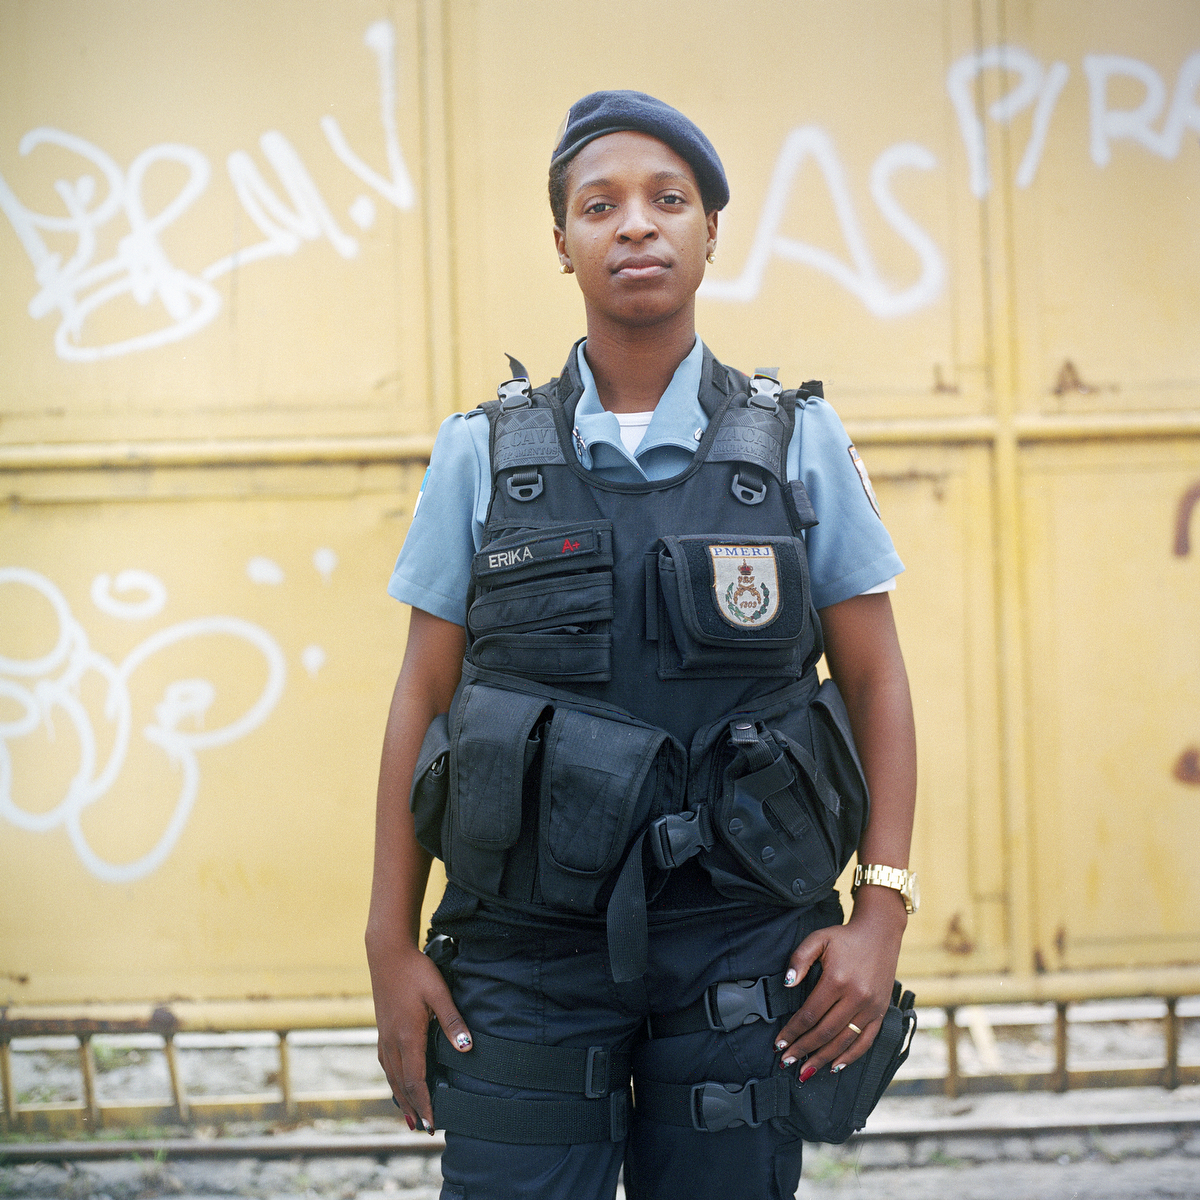 Patrol officer Erika Queriroz, 25, with the Rapid Response Team of the Pacifying Police Unit (UPP), in Complexo do Caju, Rio de Janeiro, Brazil.